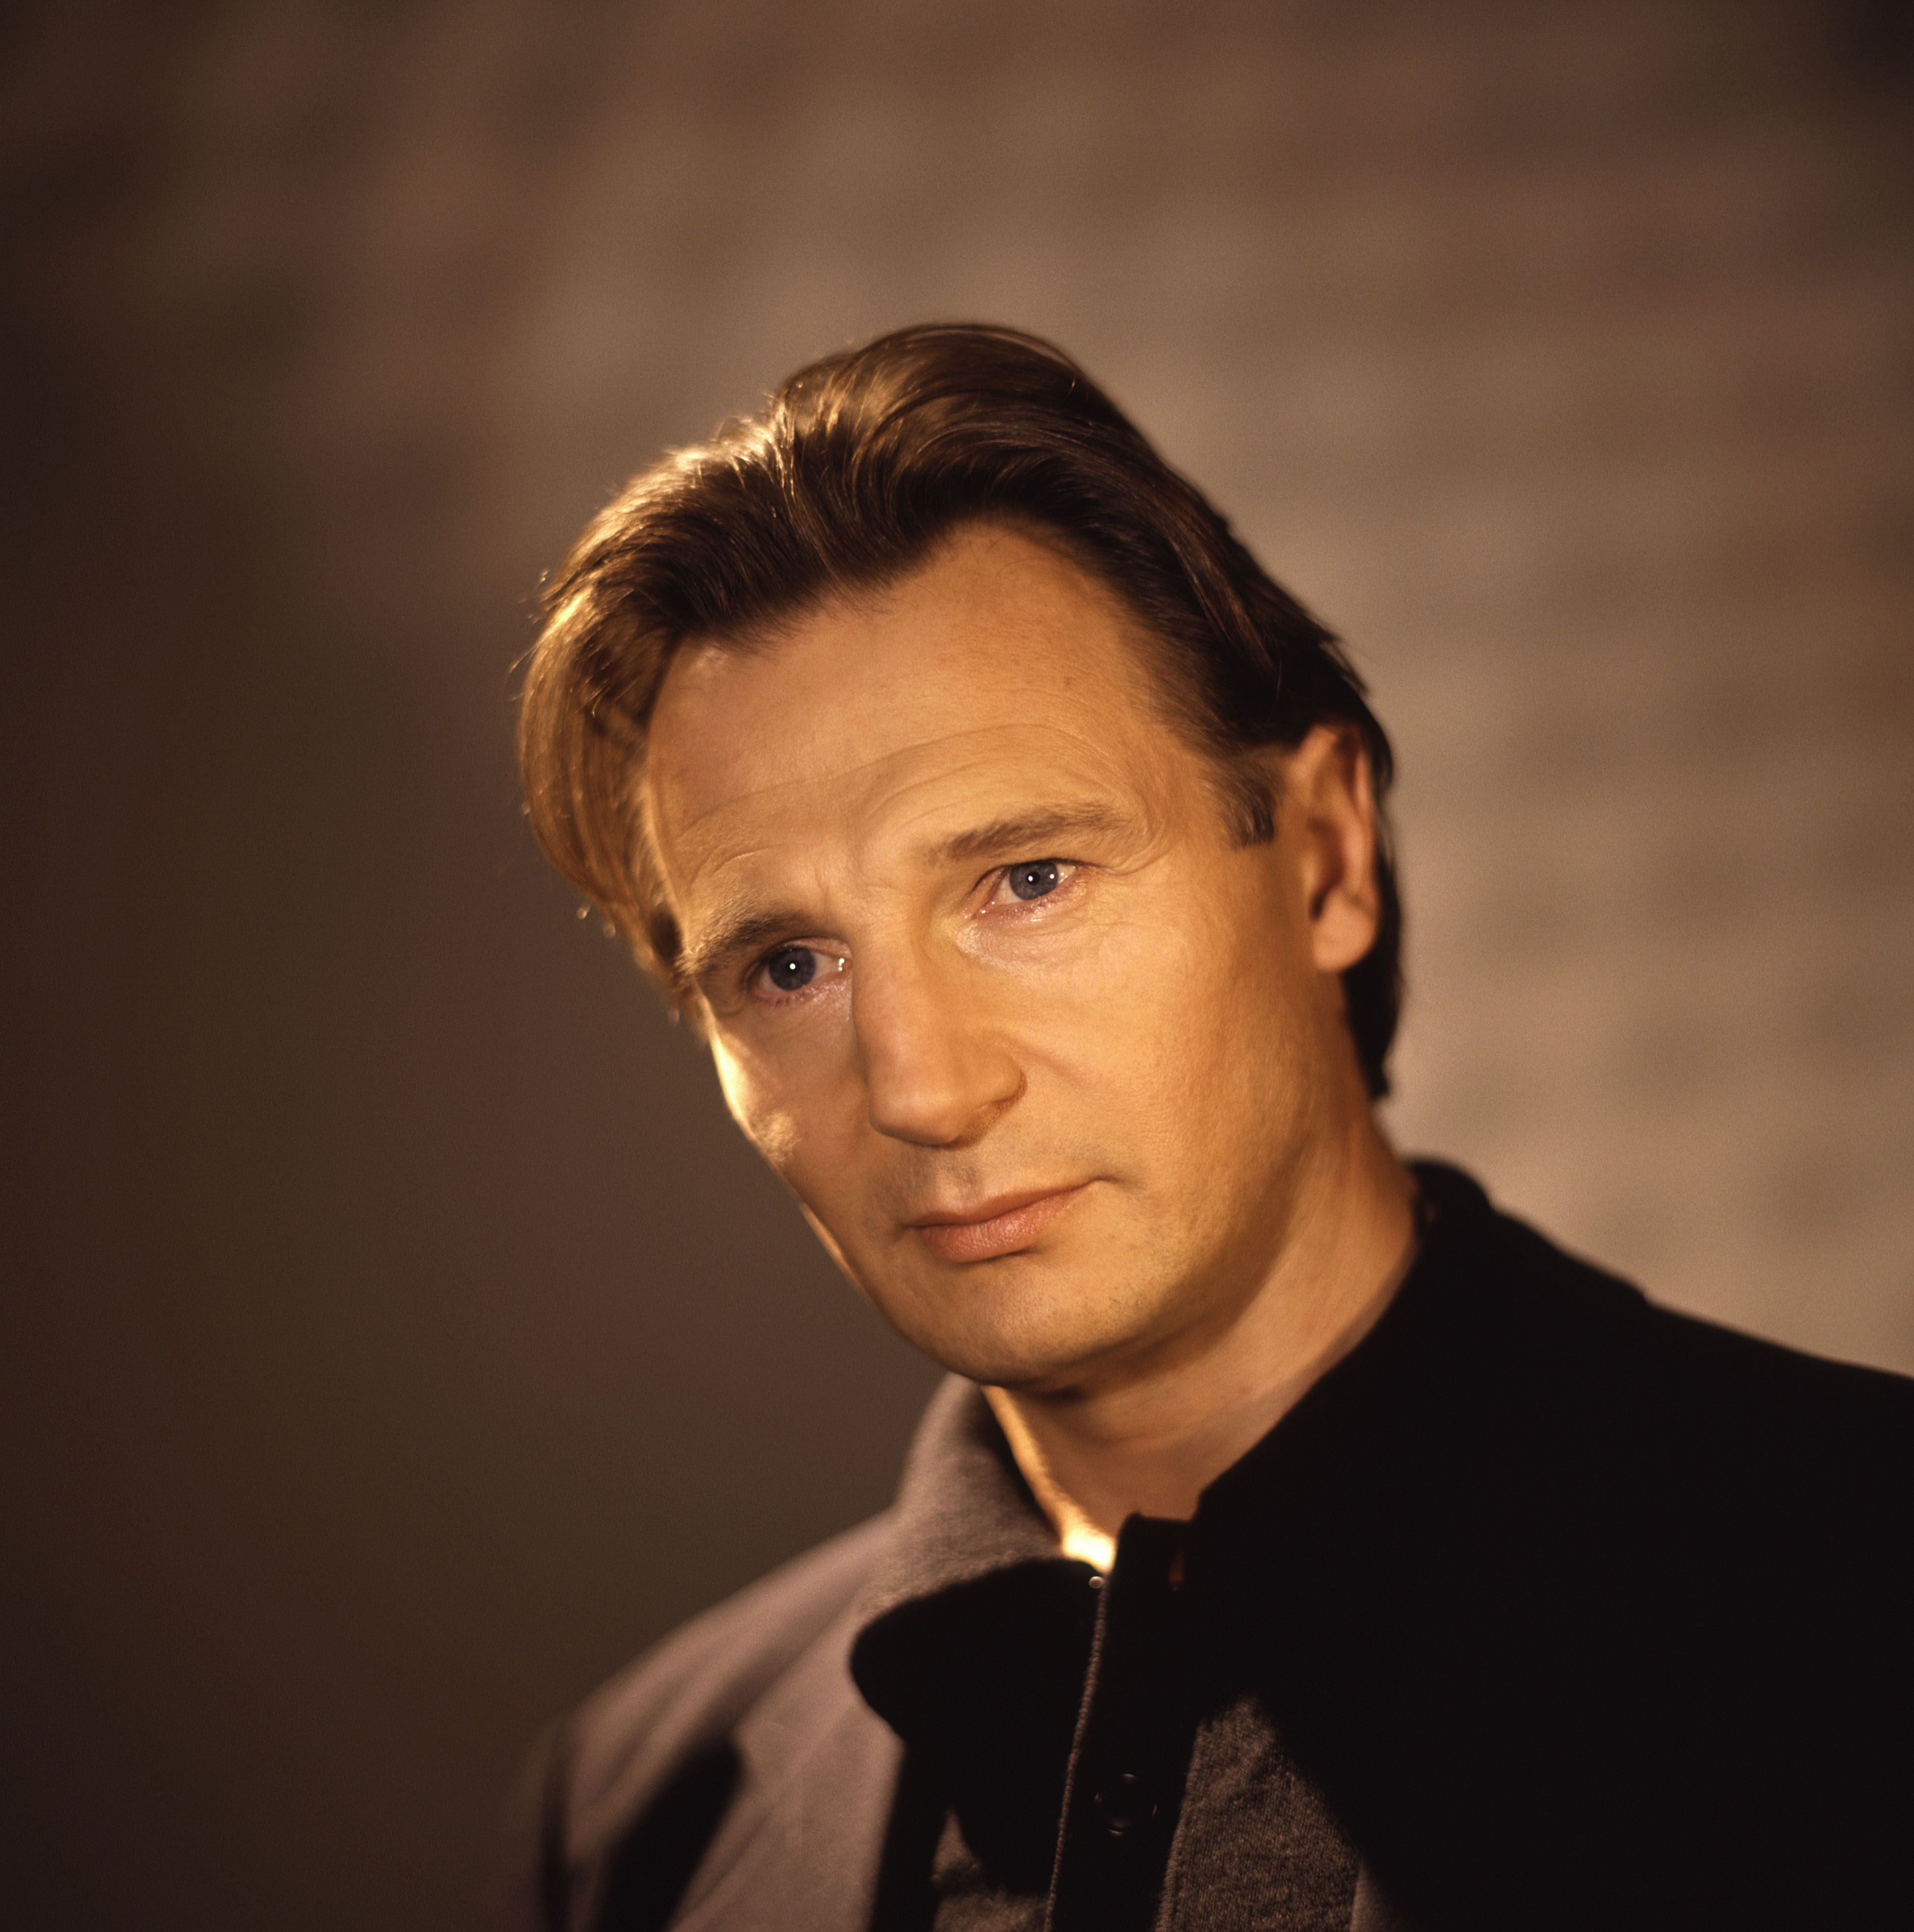 Liam Neeson photo, pics, wallpaper - photo #